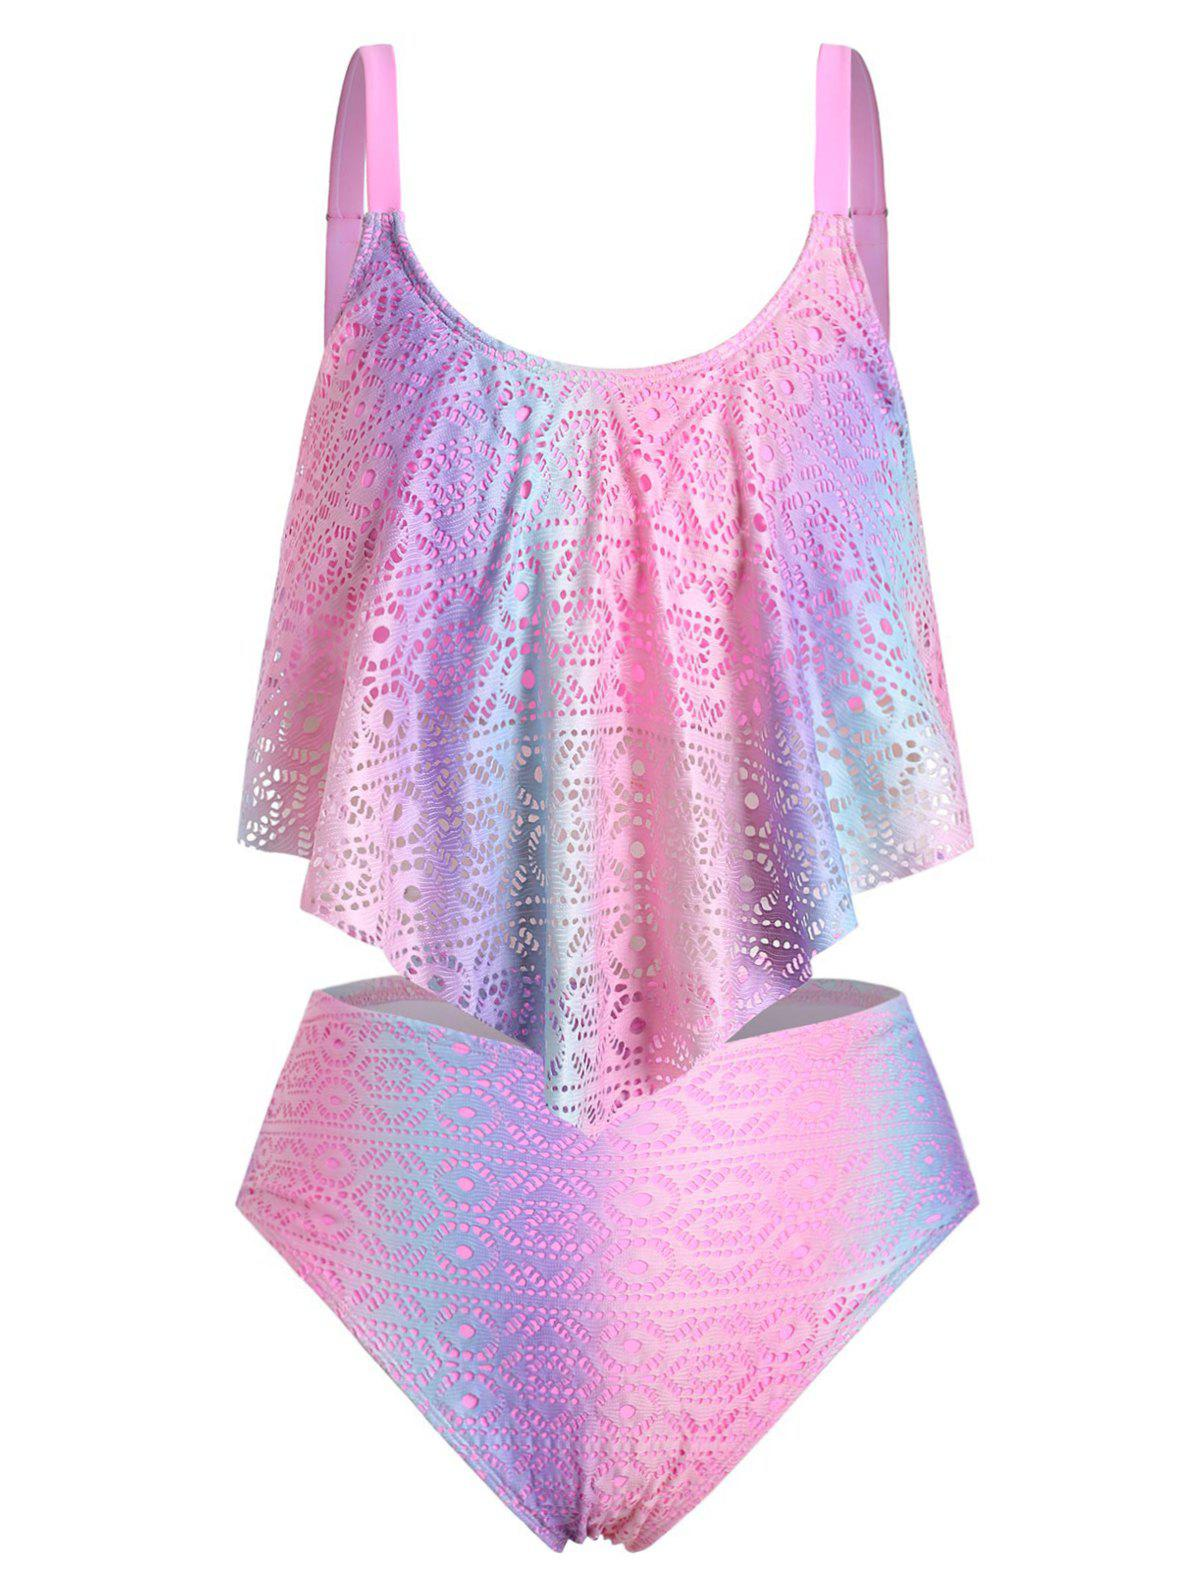 Flounce Perforated Ombre Plus Size Tankini Swimsuit - PINK 4X